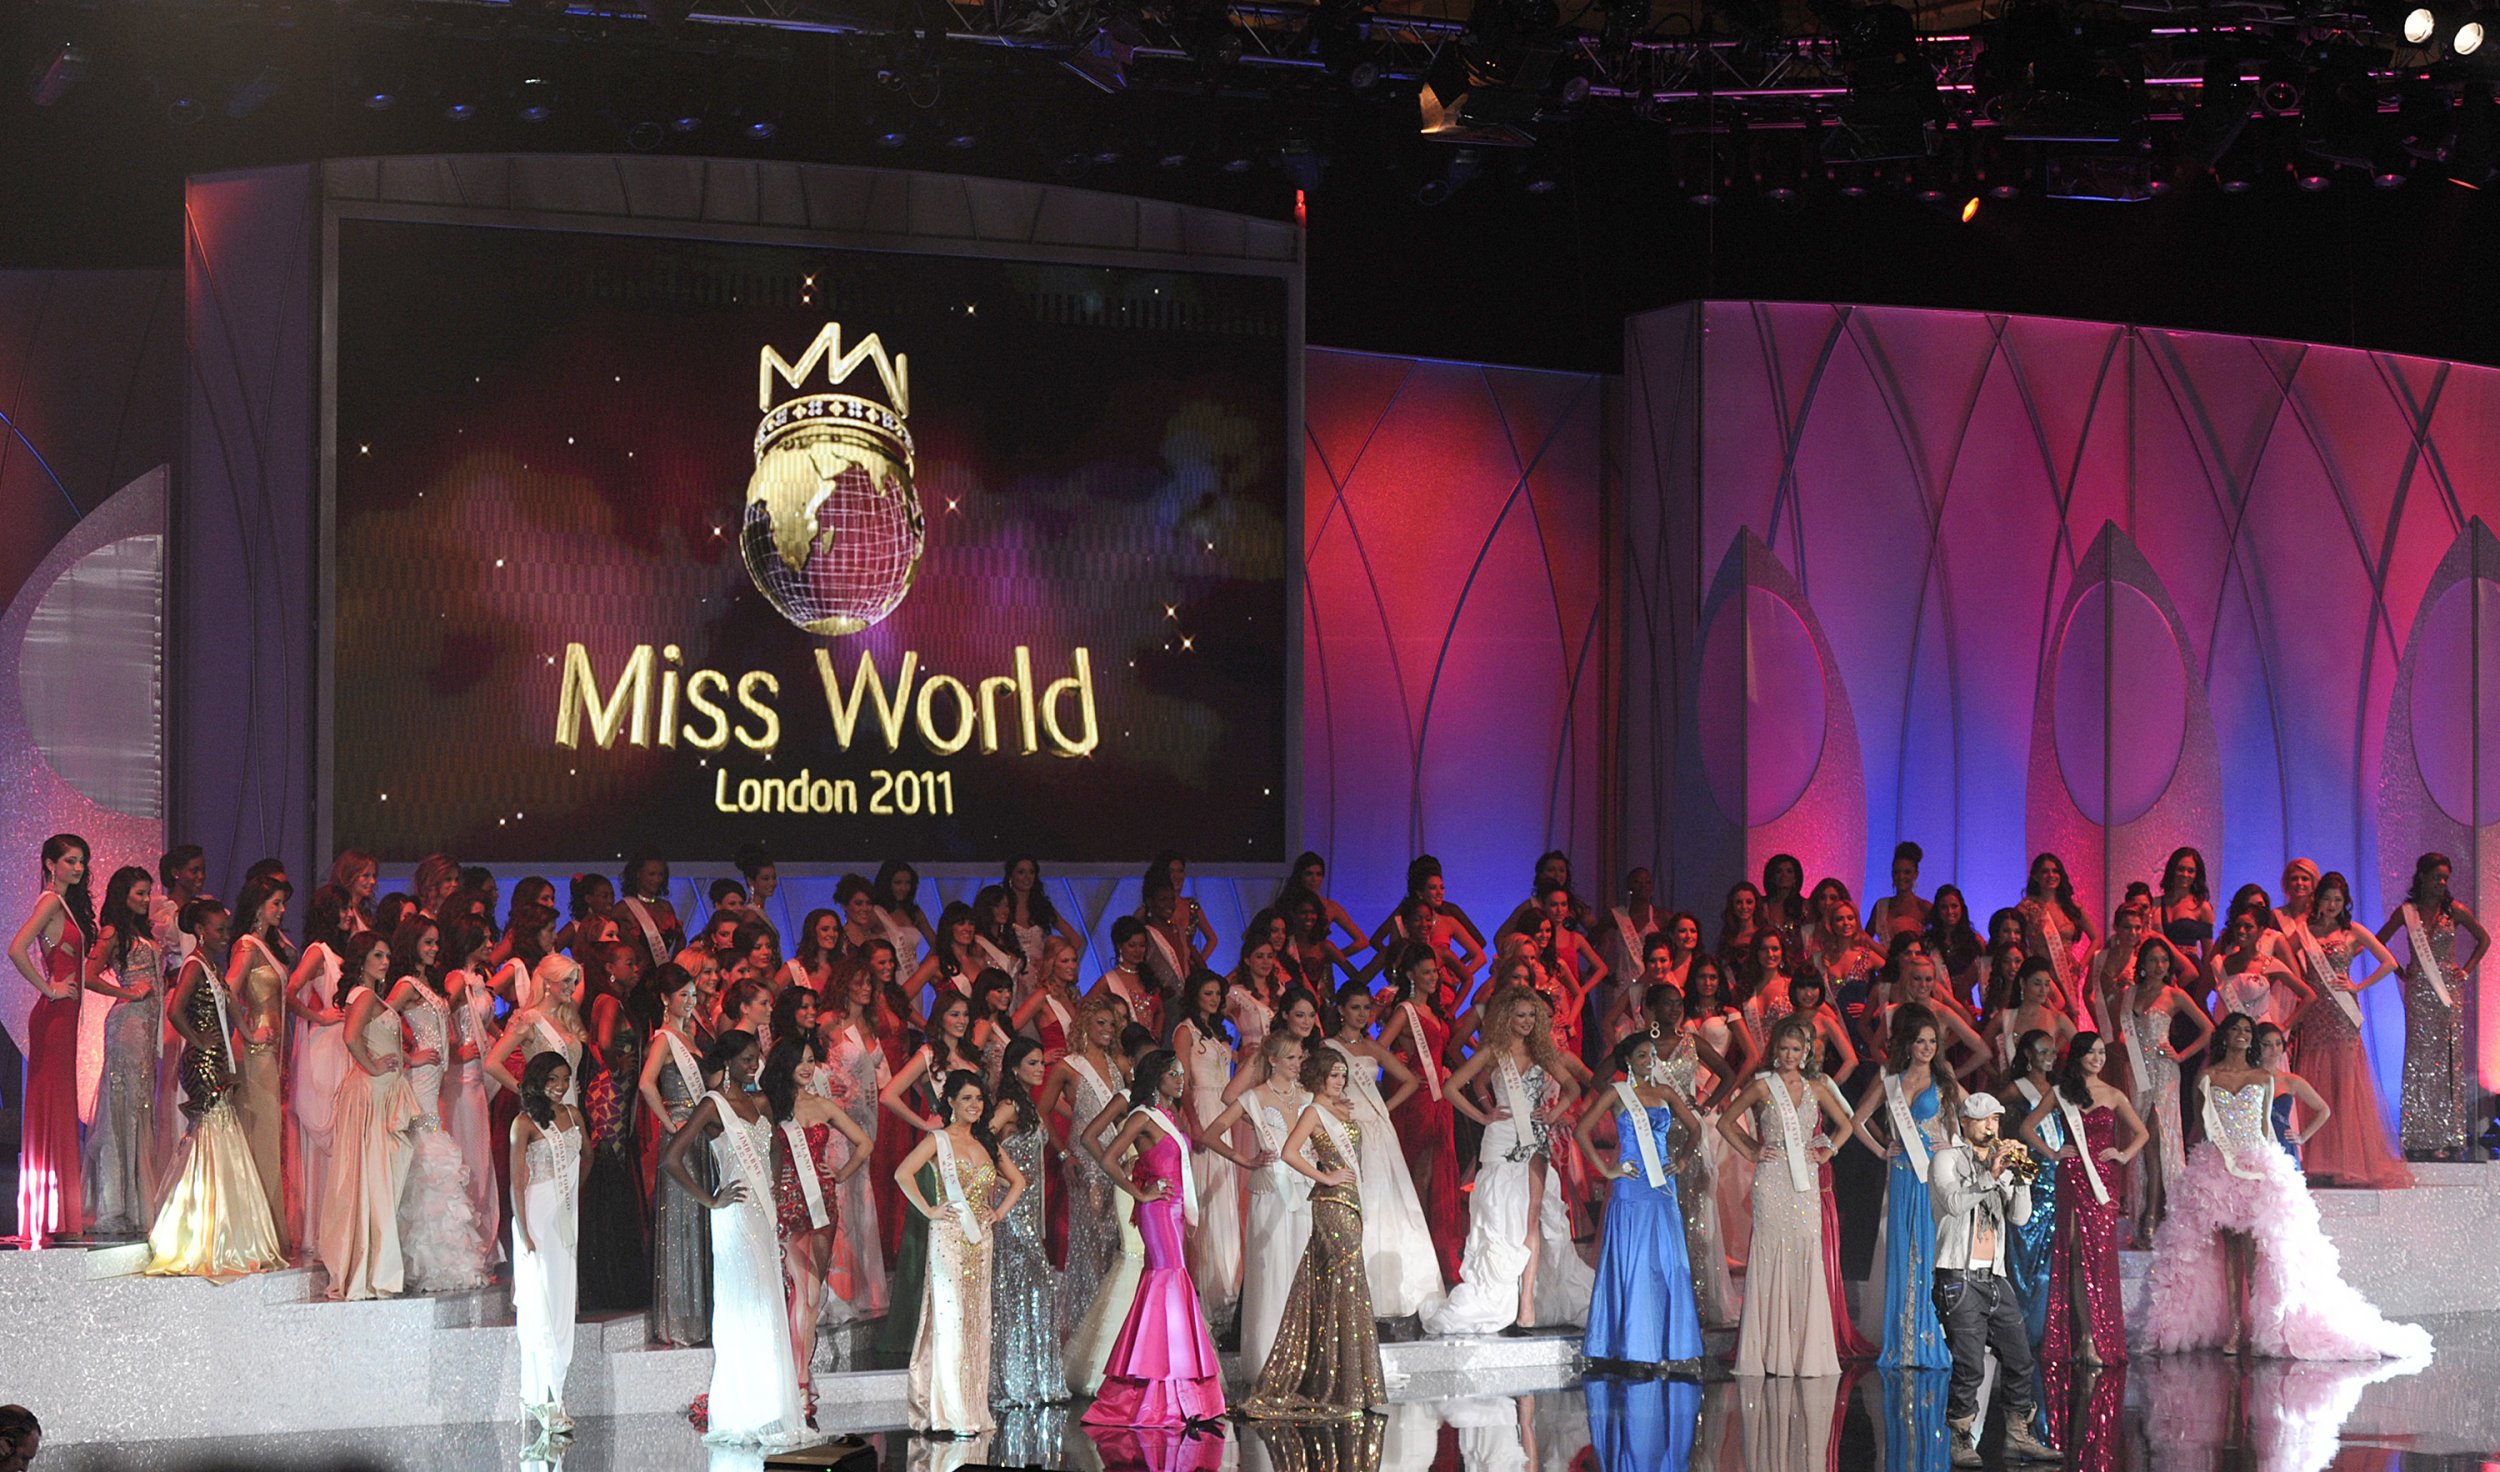 Miss World contestants on stage in London.